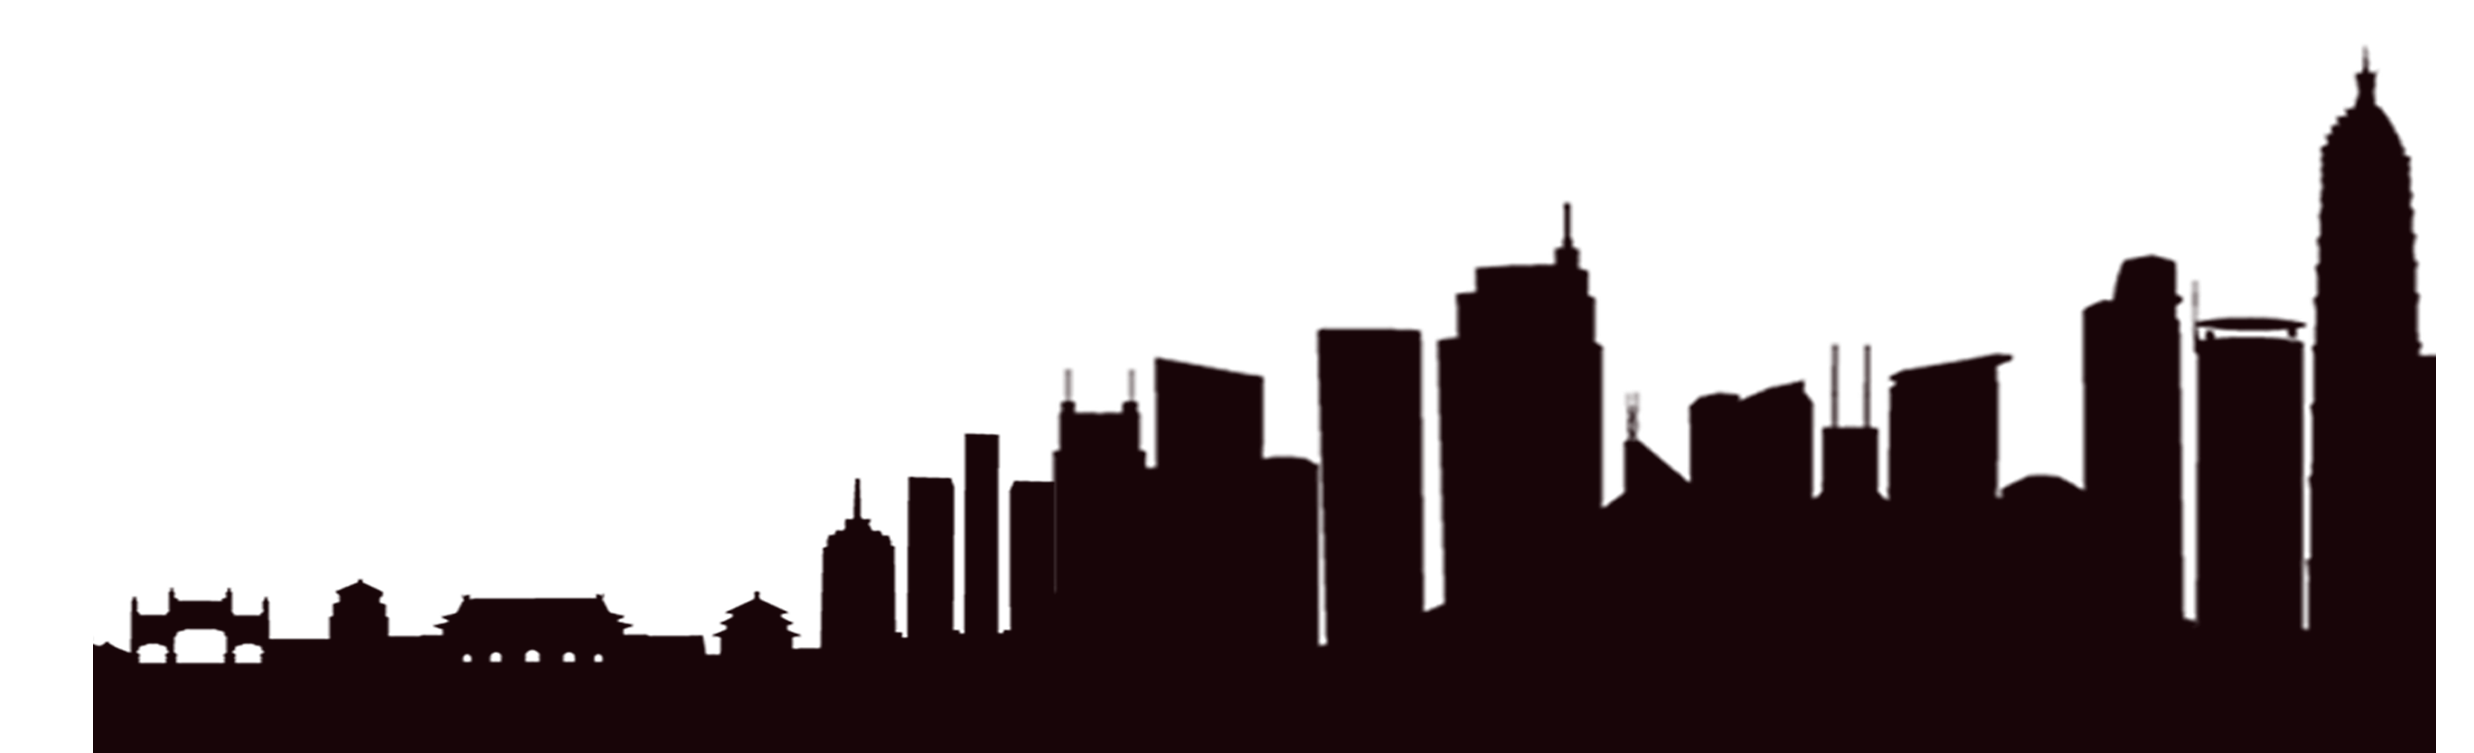 Skyscraper silhouette png. Building transprent free download